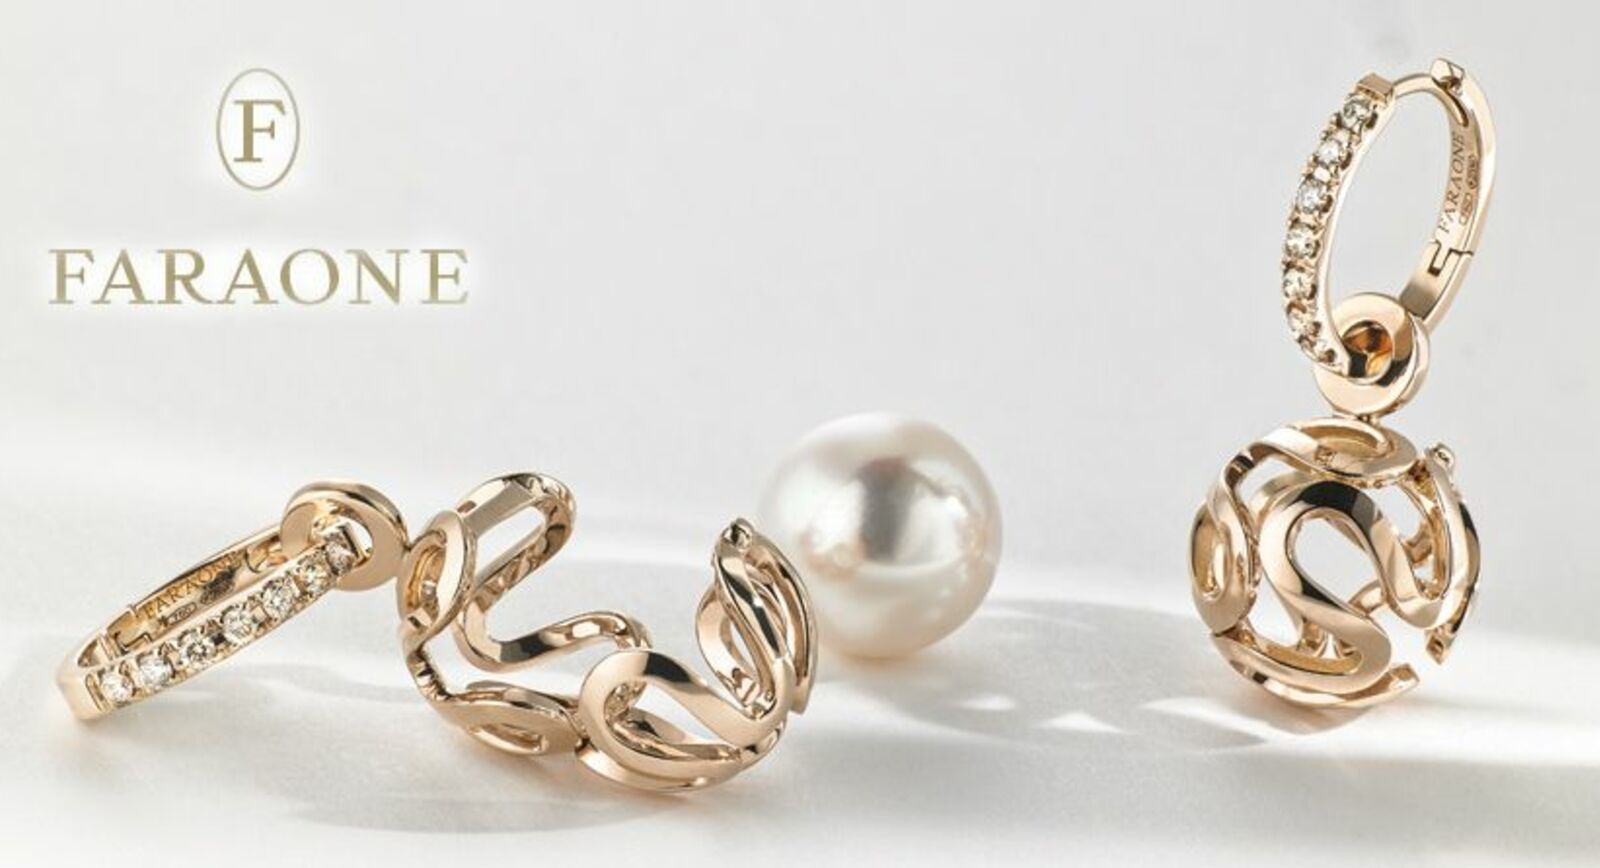 Explore playful luxury of Sfere di Faraone collection